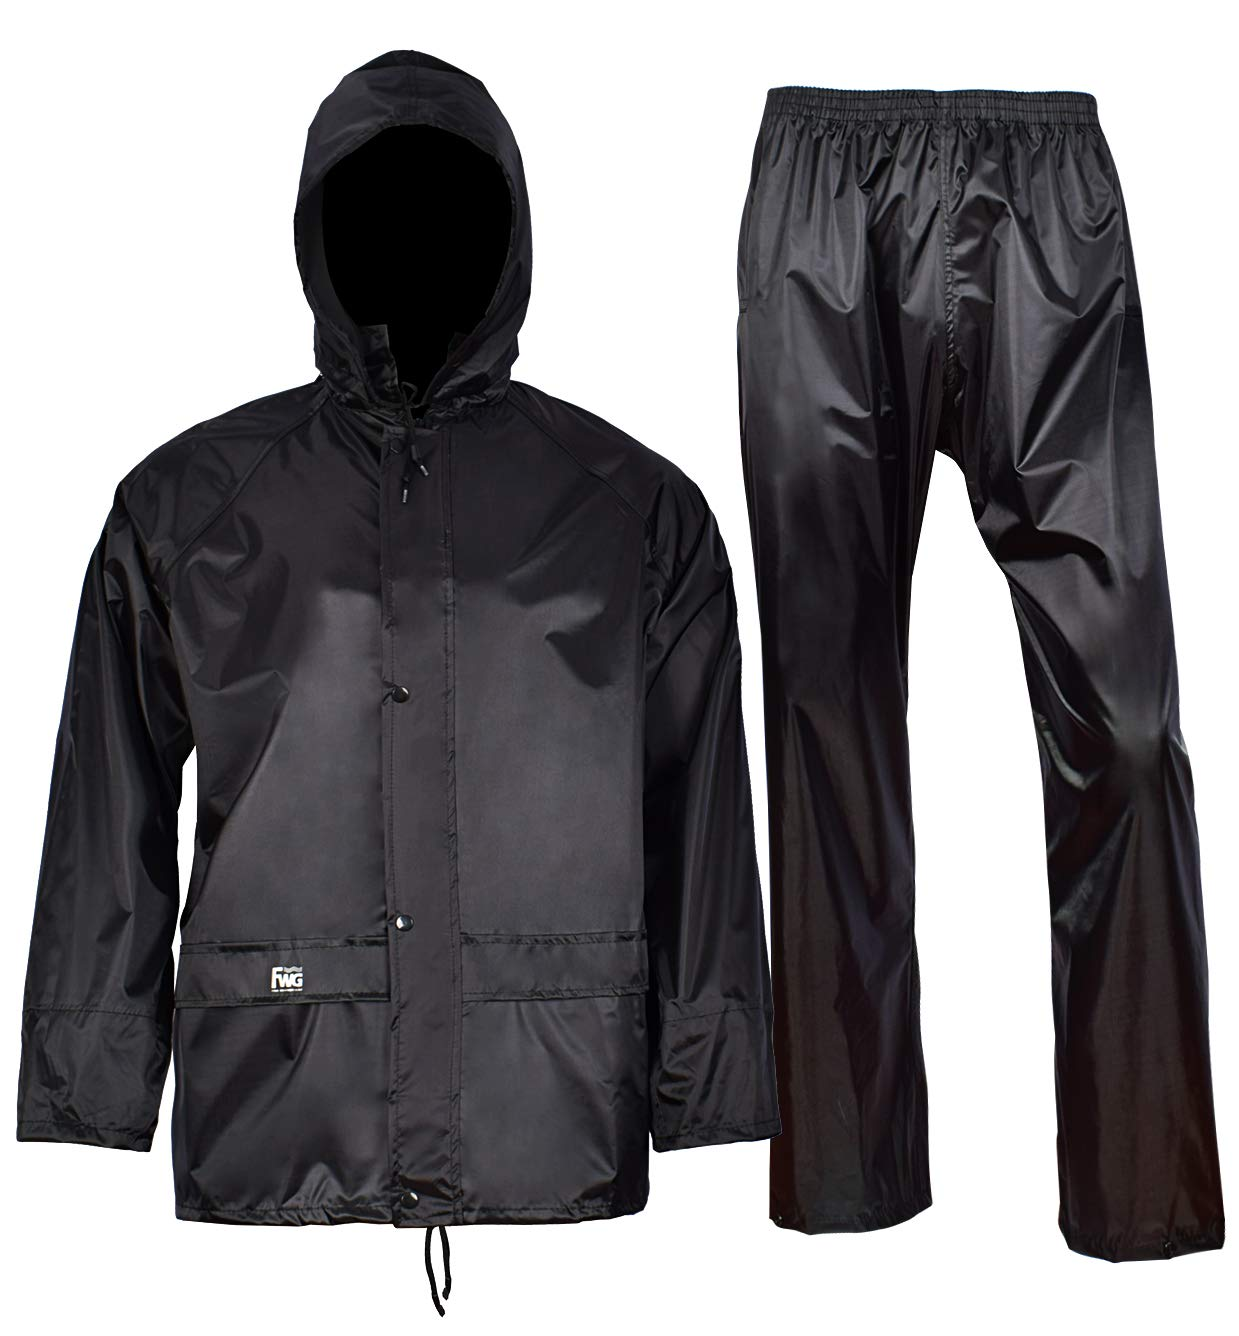 Rain Jacket with Pants for Men Women Waterproof Rain Coat 3-Pieces Ultra-Lite Suits (Large, Black) by FWG (Image #2)